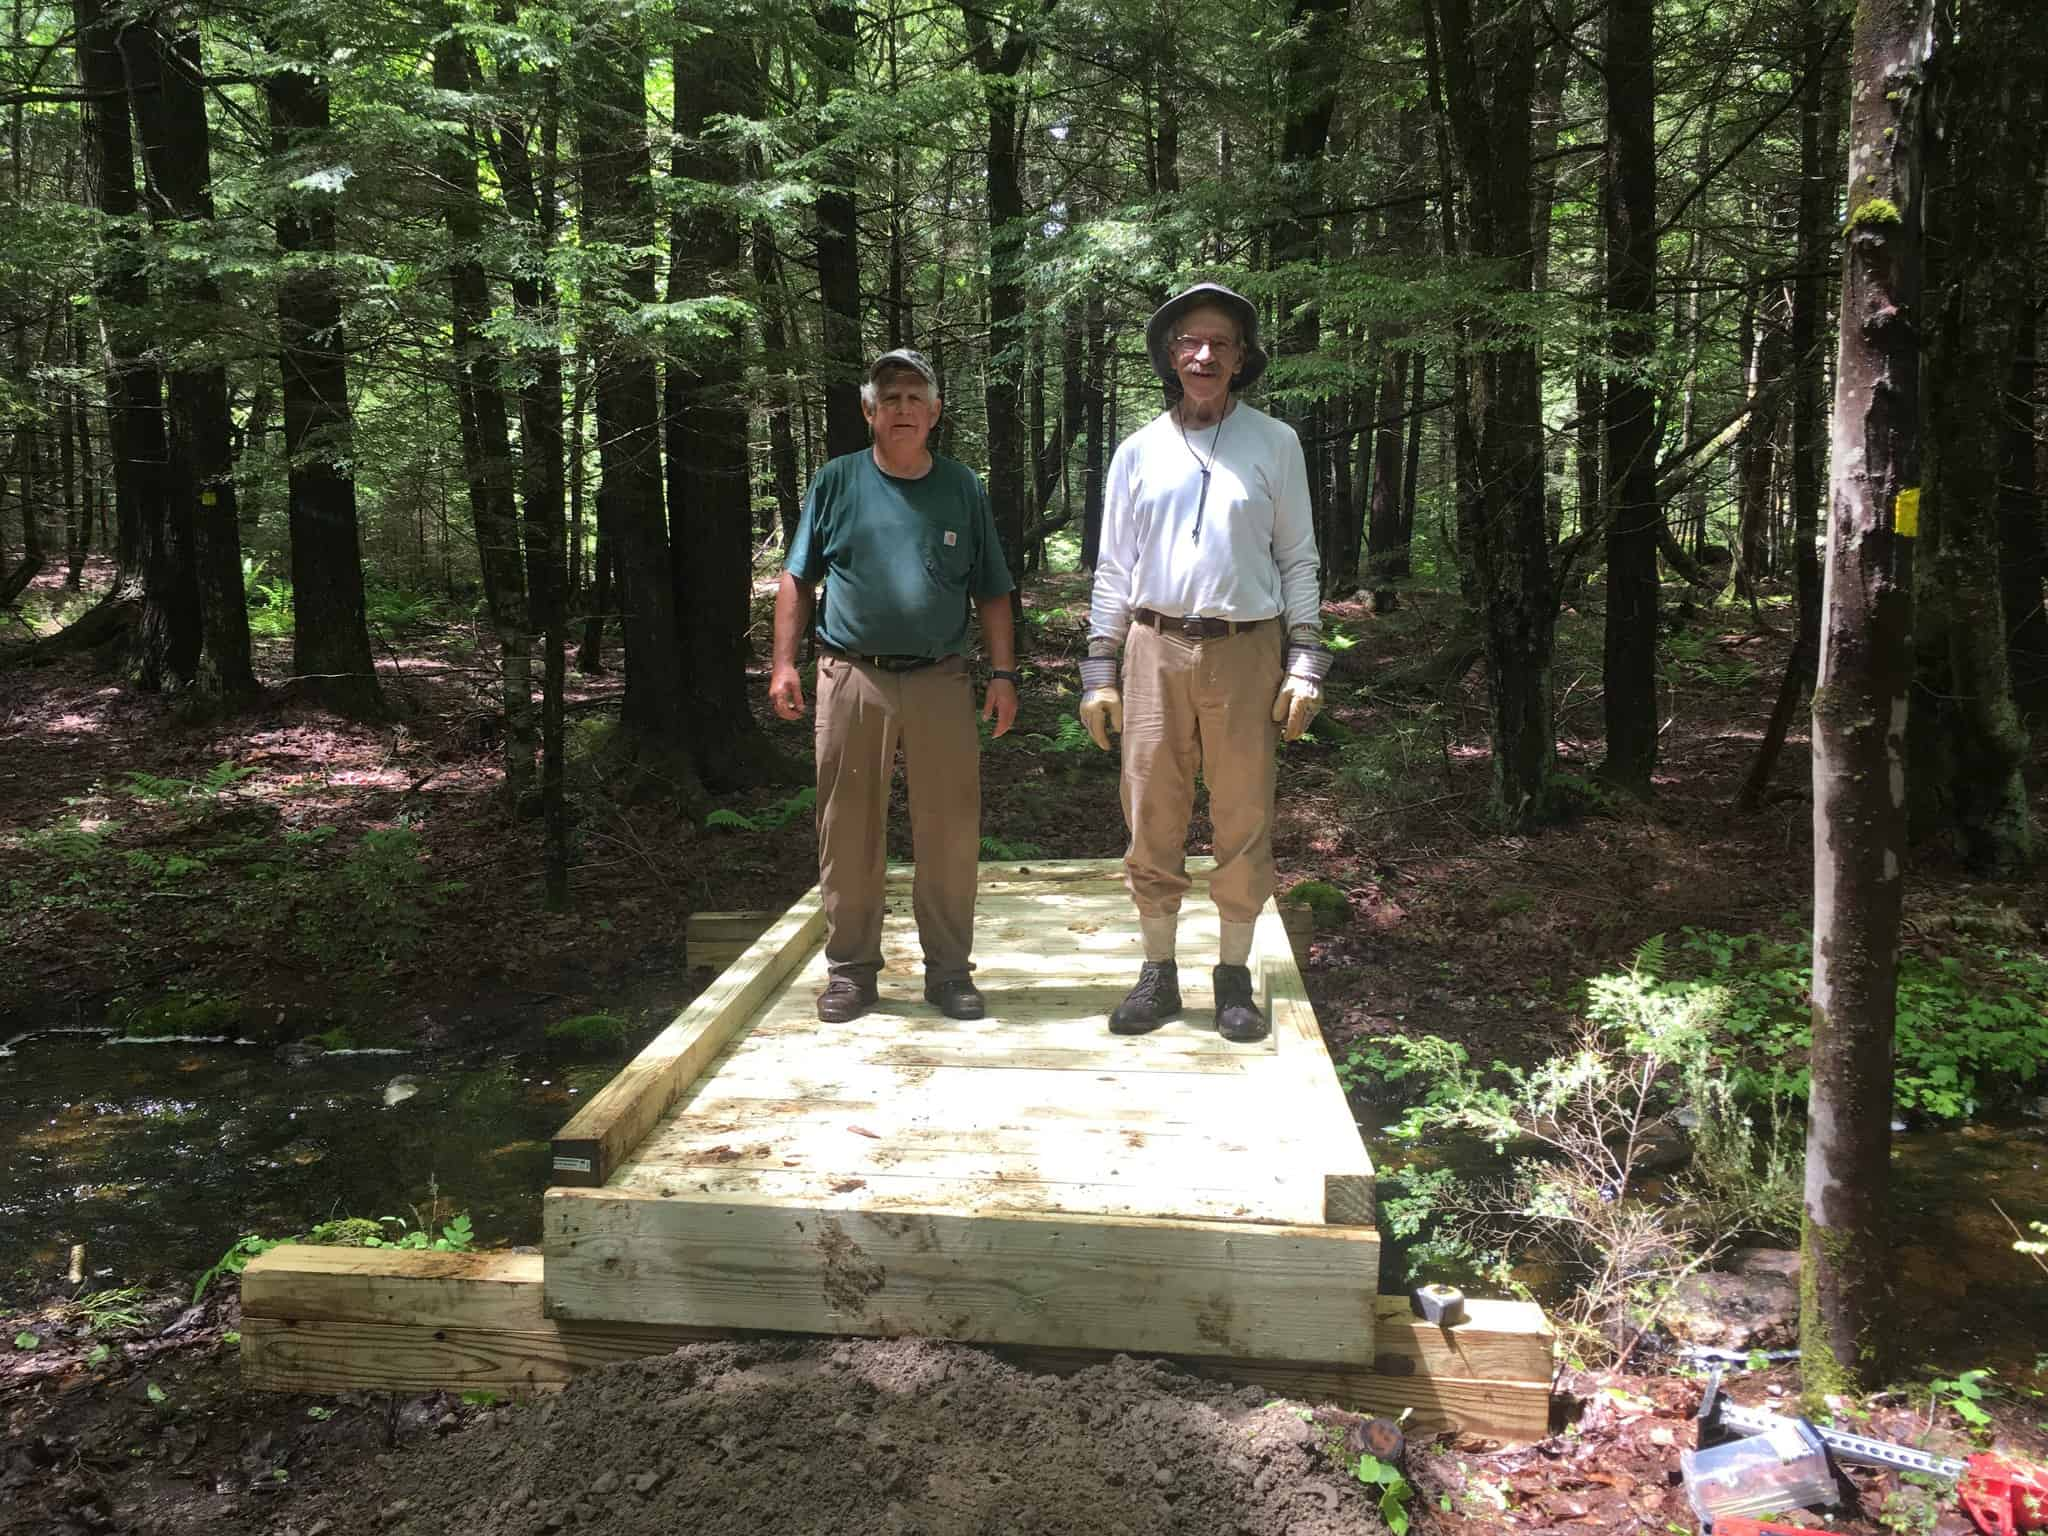 Tom Bratko and Ron Paradise standing on a completed wooden bridge at Rome Conservation Area